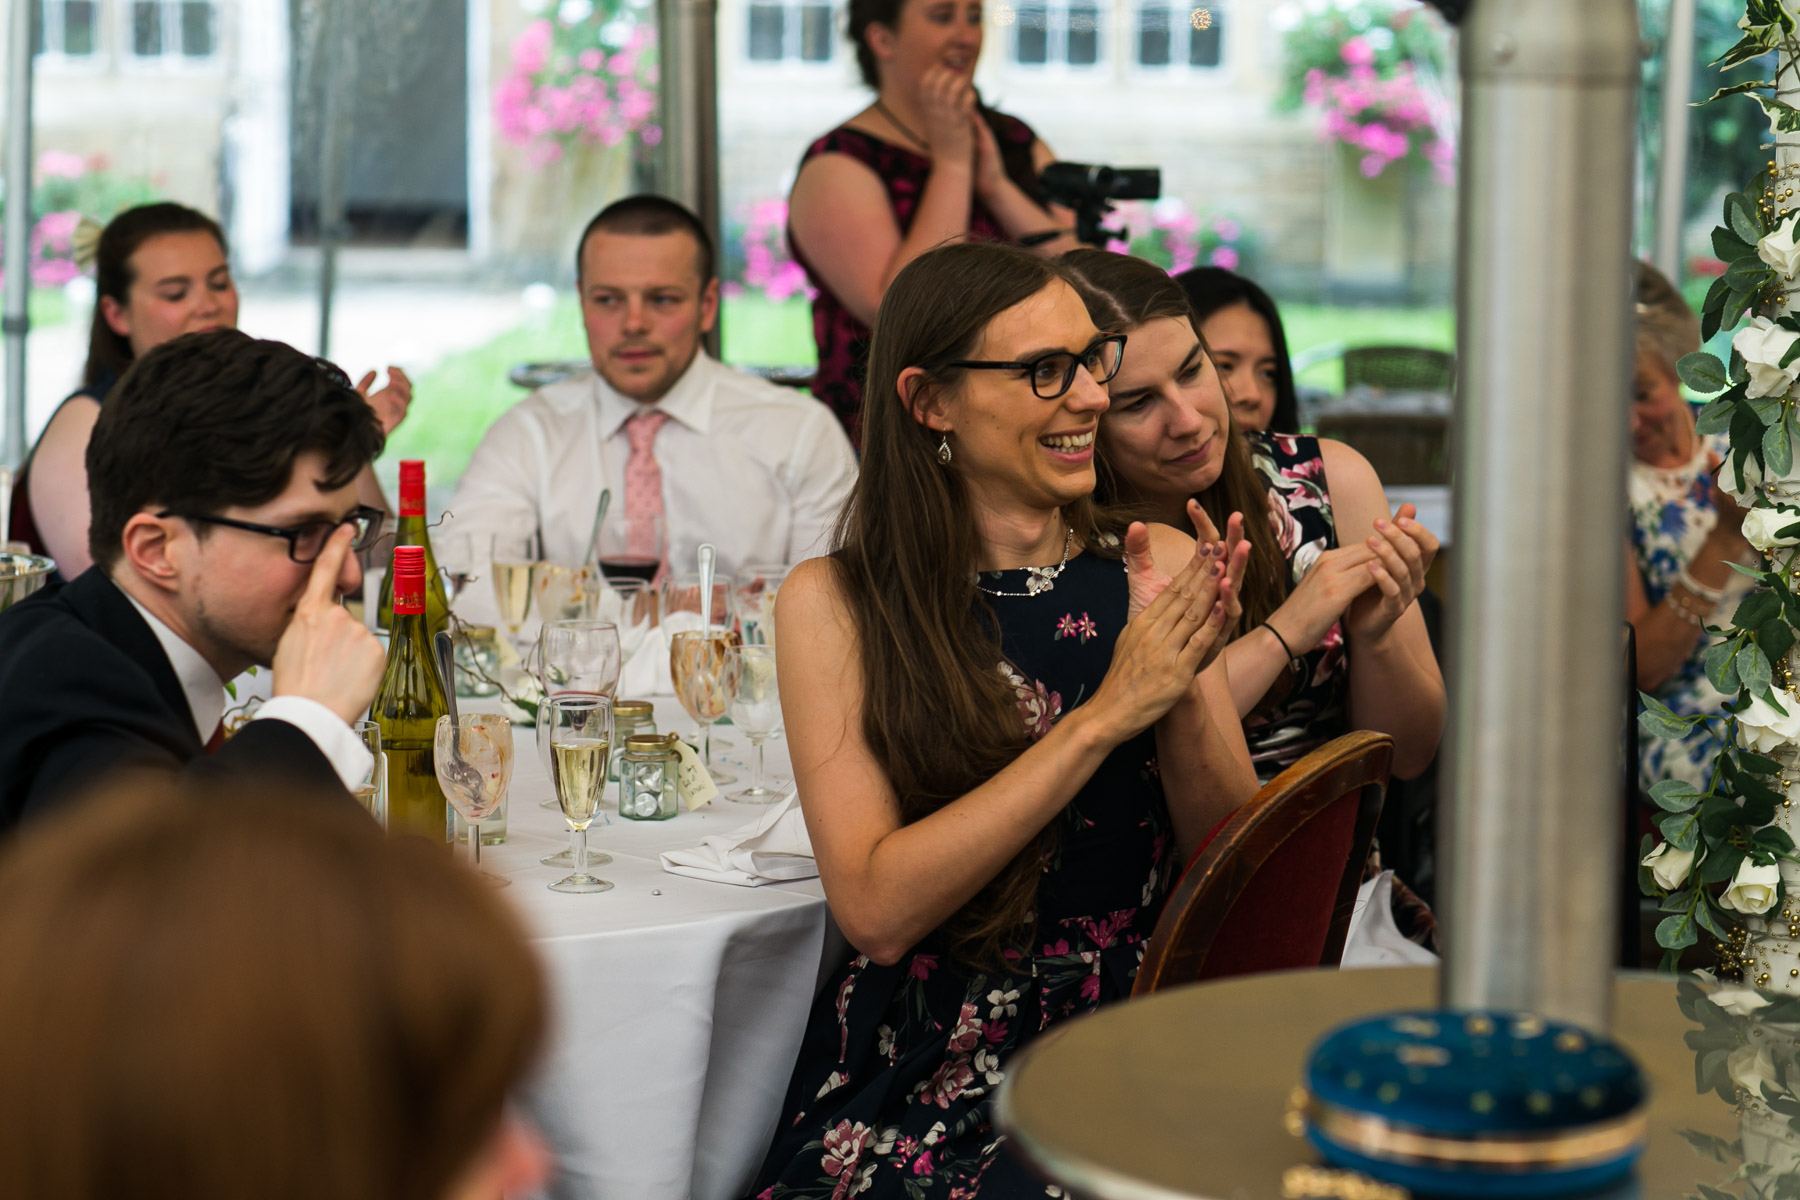 Relax wedding guests clapping